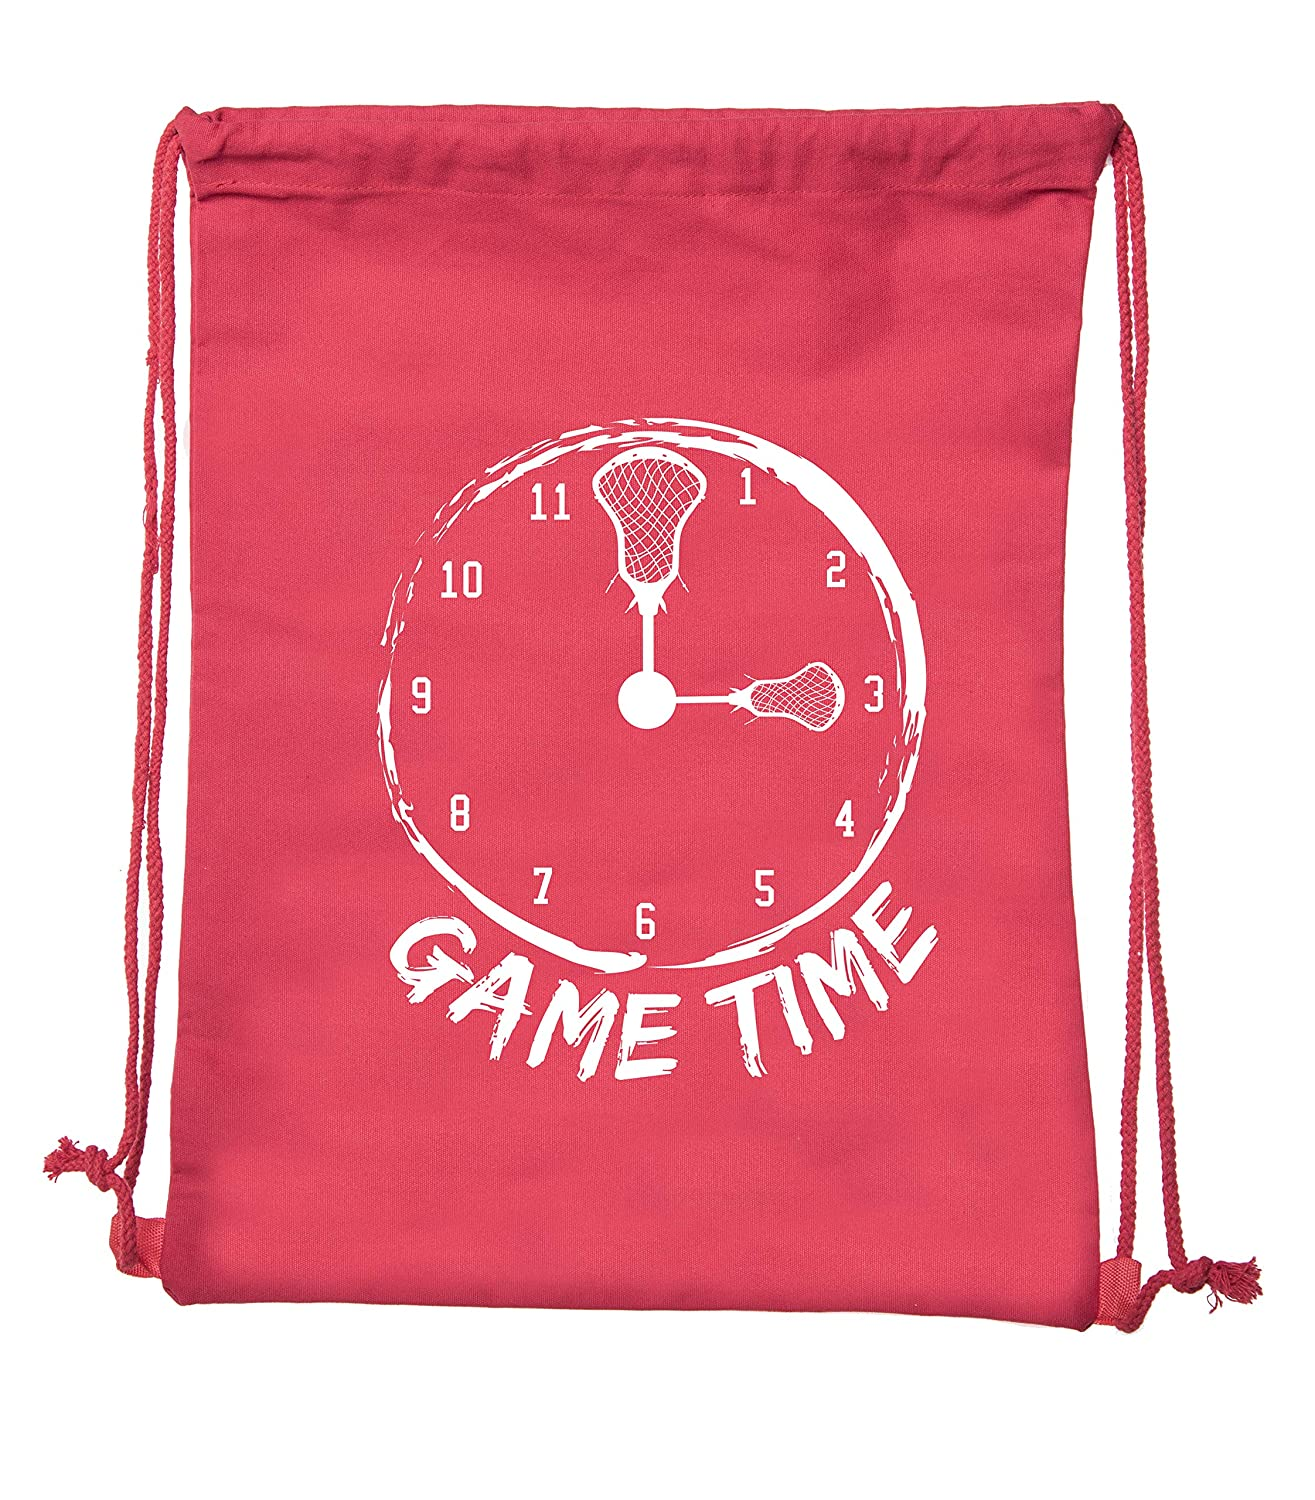 Party Favor Lacrosse bags Cotton drawstring Backpacks for Parties and promotional events!